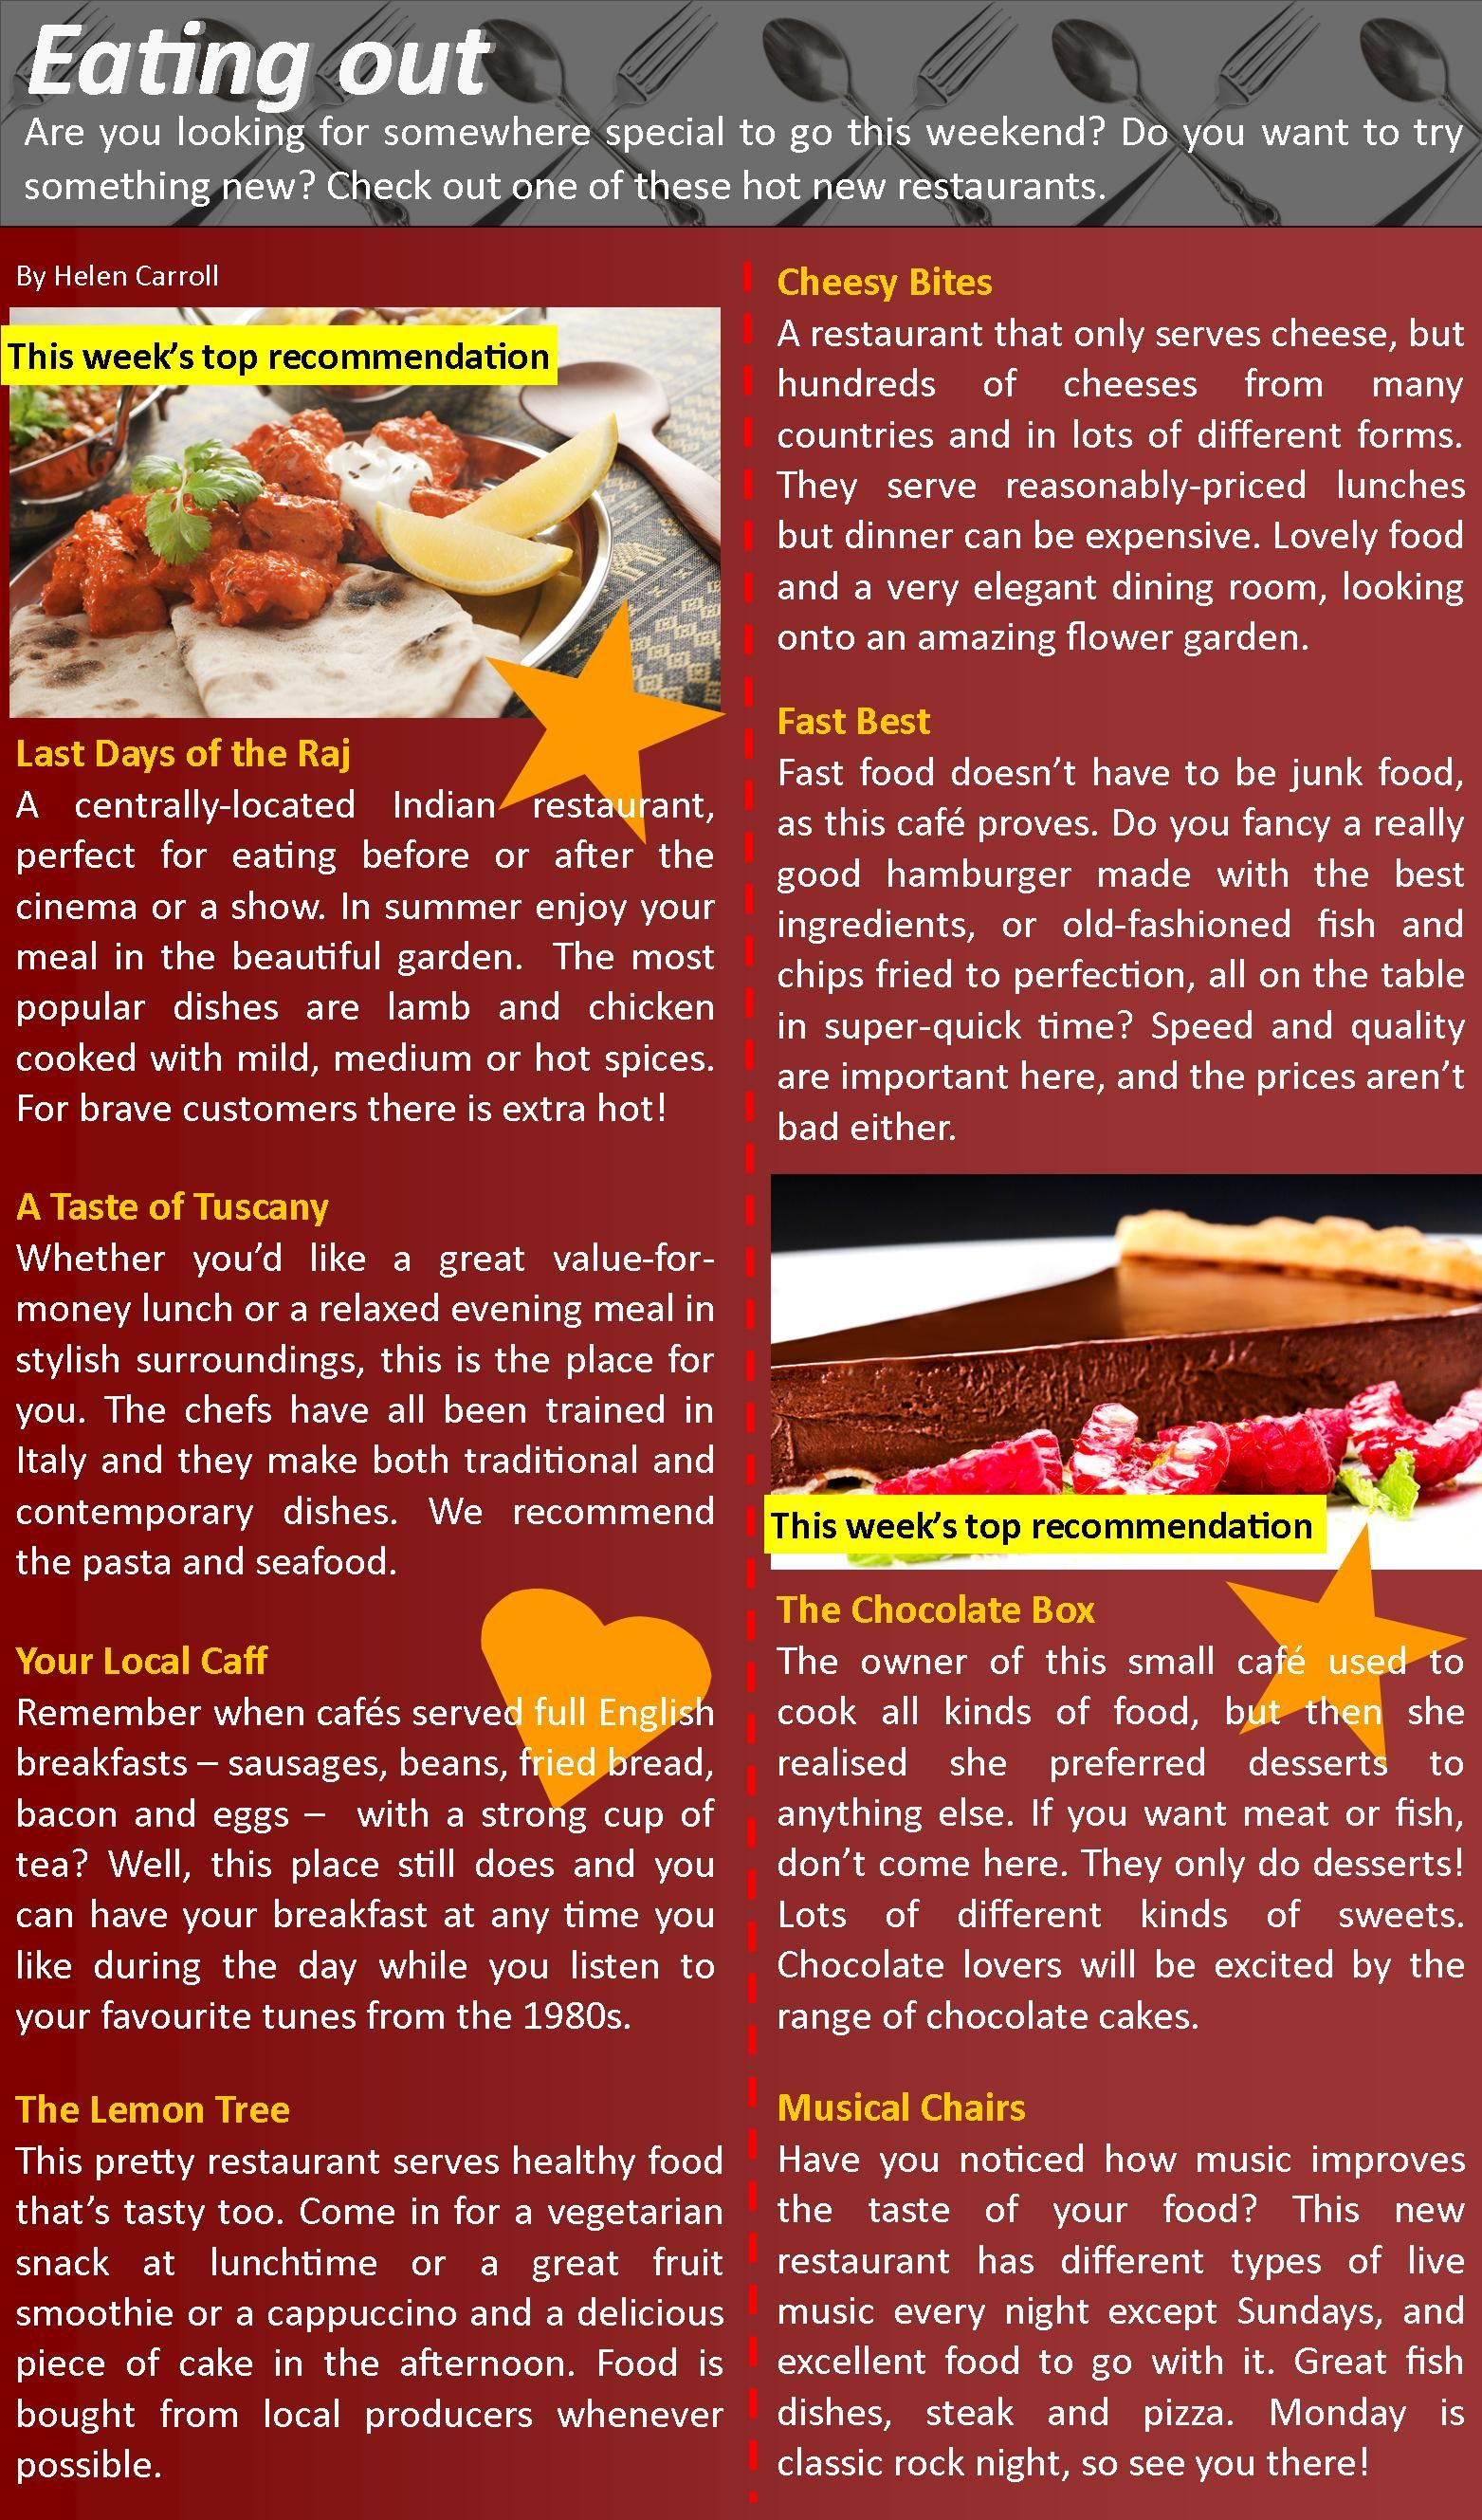 003 Food and restaurants English teaching resources, English